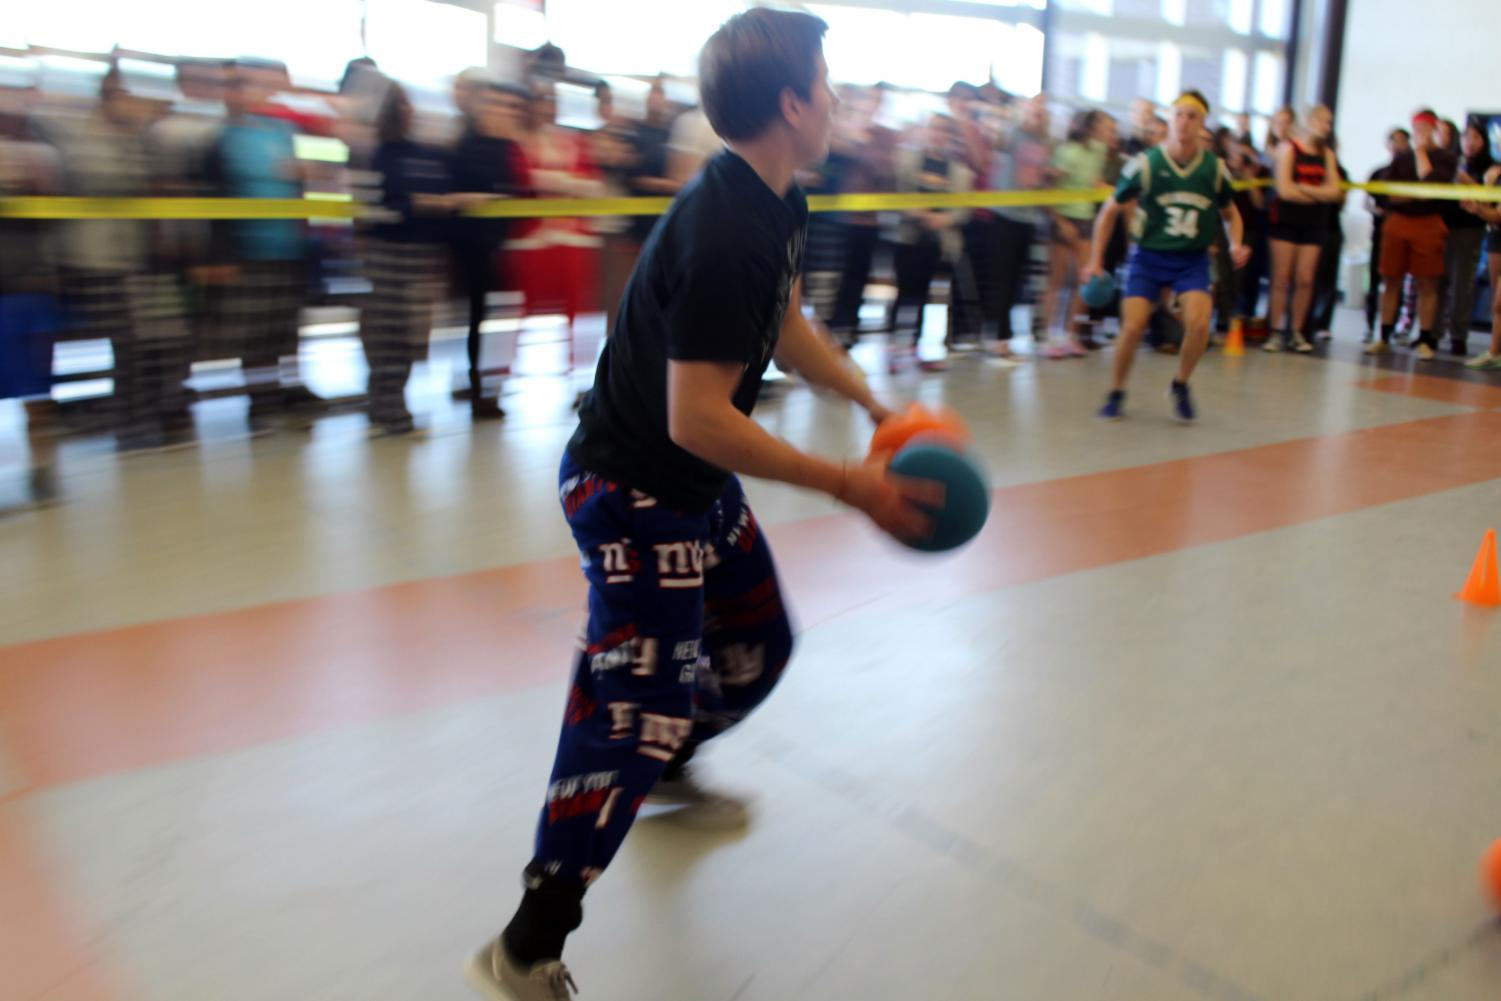 Armed+with+two+dodgeballs%2C+sophomore+Michael+Cielecki+of+Spring+Lake+Heights+helped+carry+his+class+to+victory+in+the+Dodgeball+tournament+during+lunch+on+Friday%2C+Nov.+3.